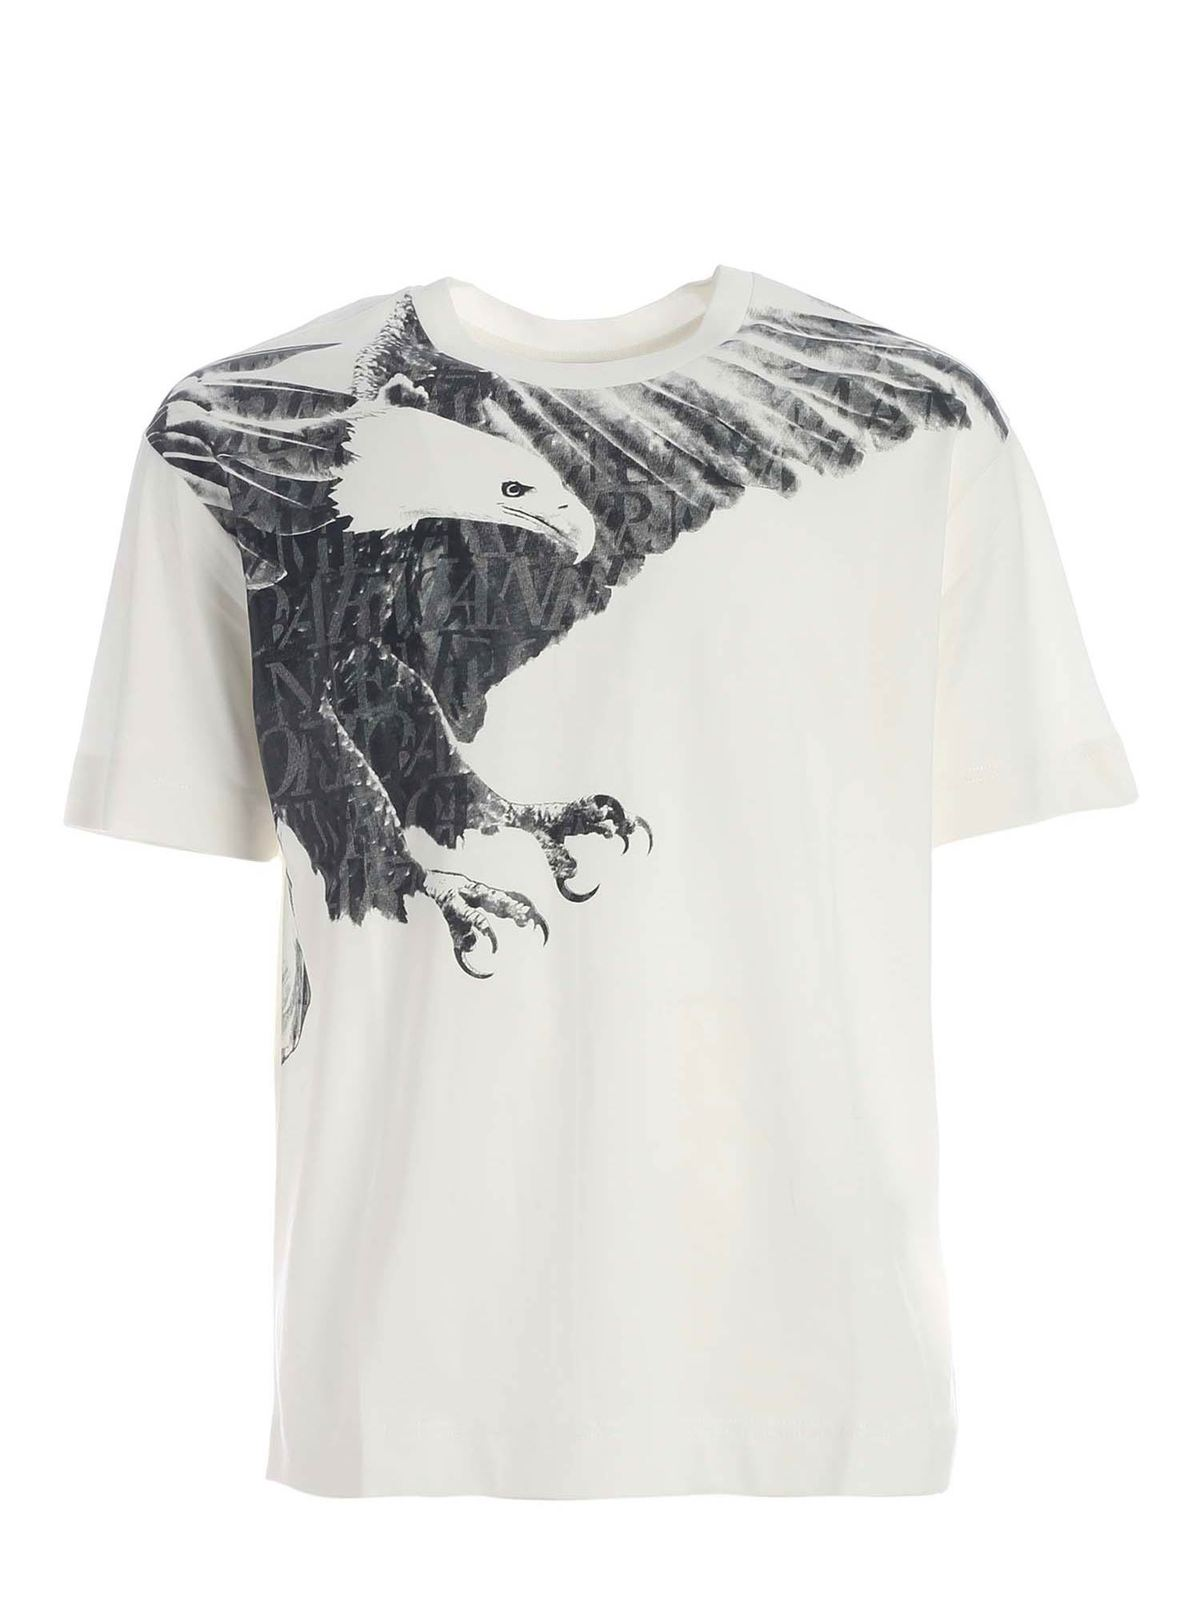 Emporio Armani SHADES OF GREY PRINT T-SHIRT IN WHITE